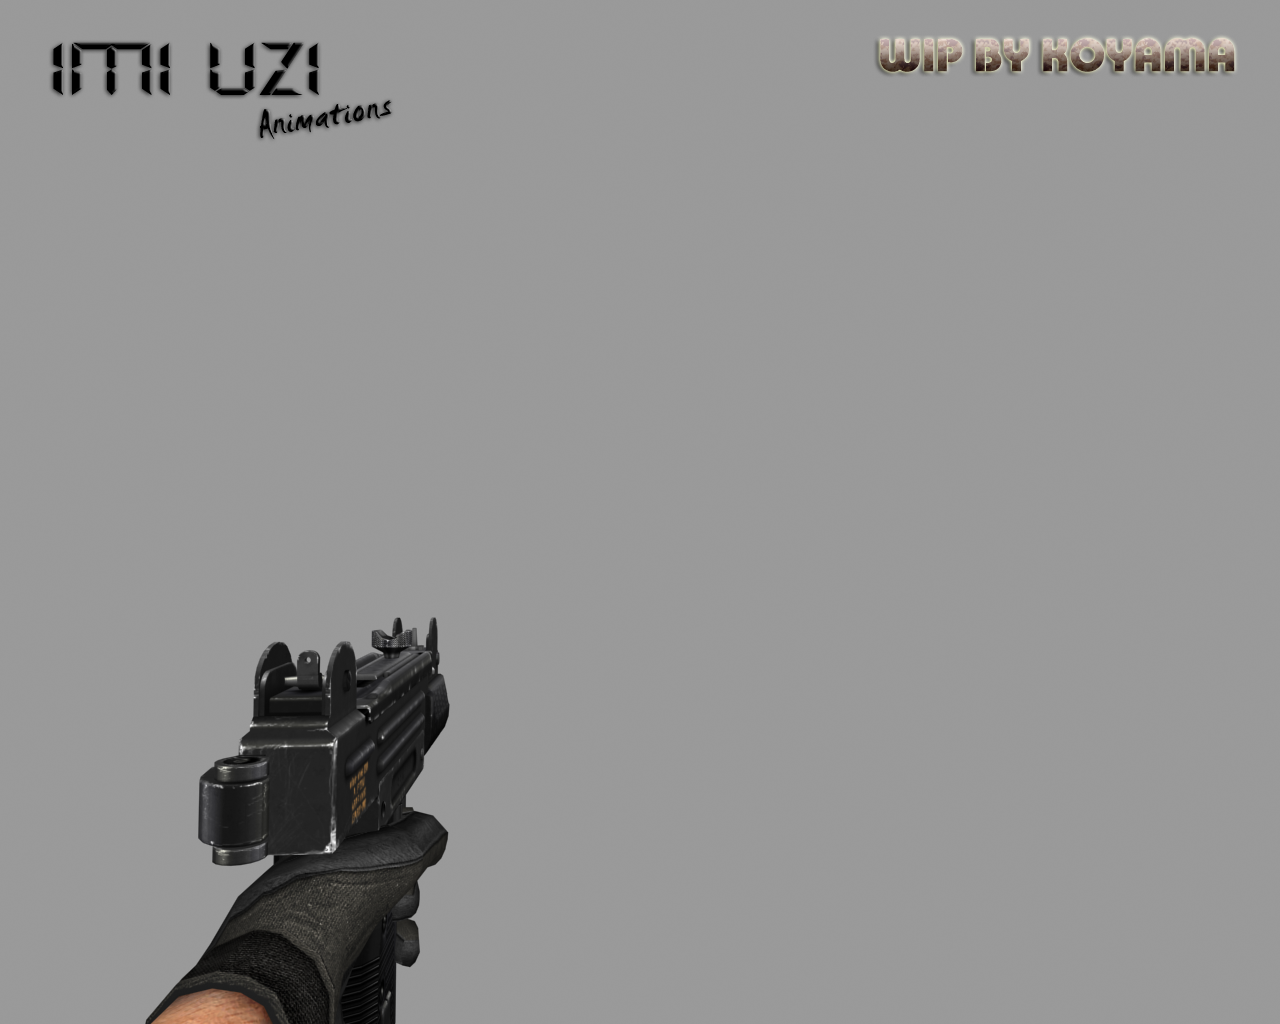 Uzi animations